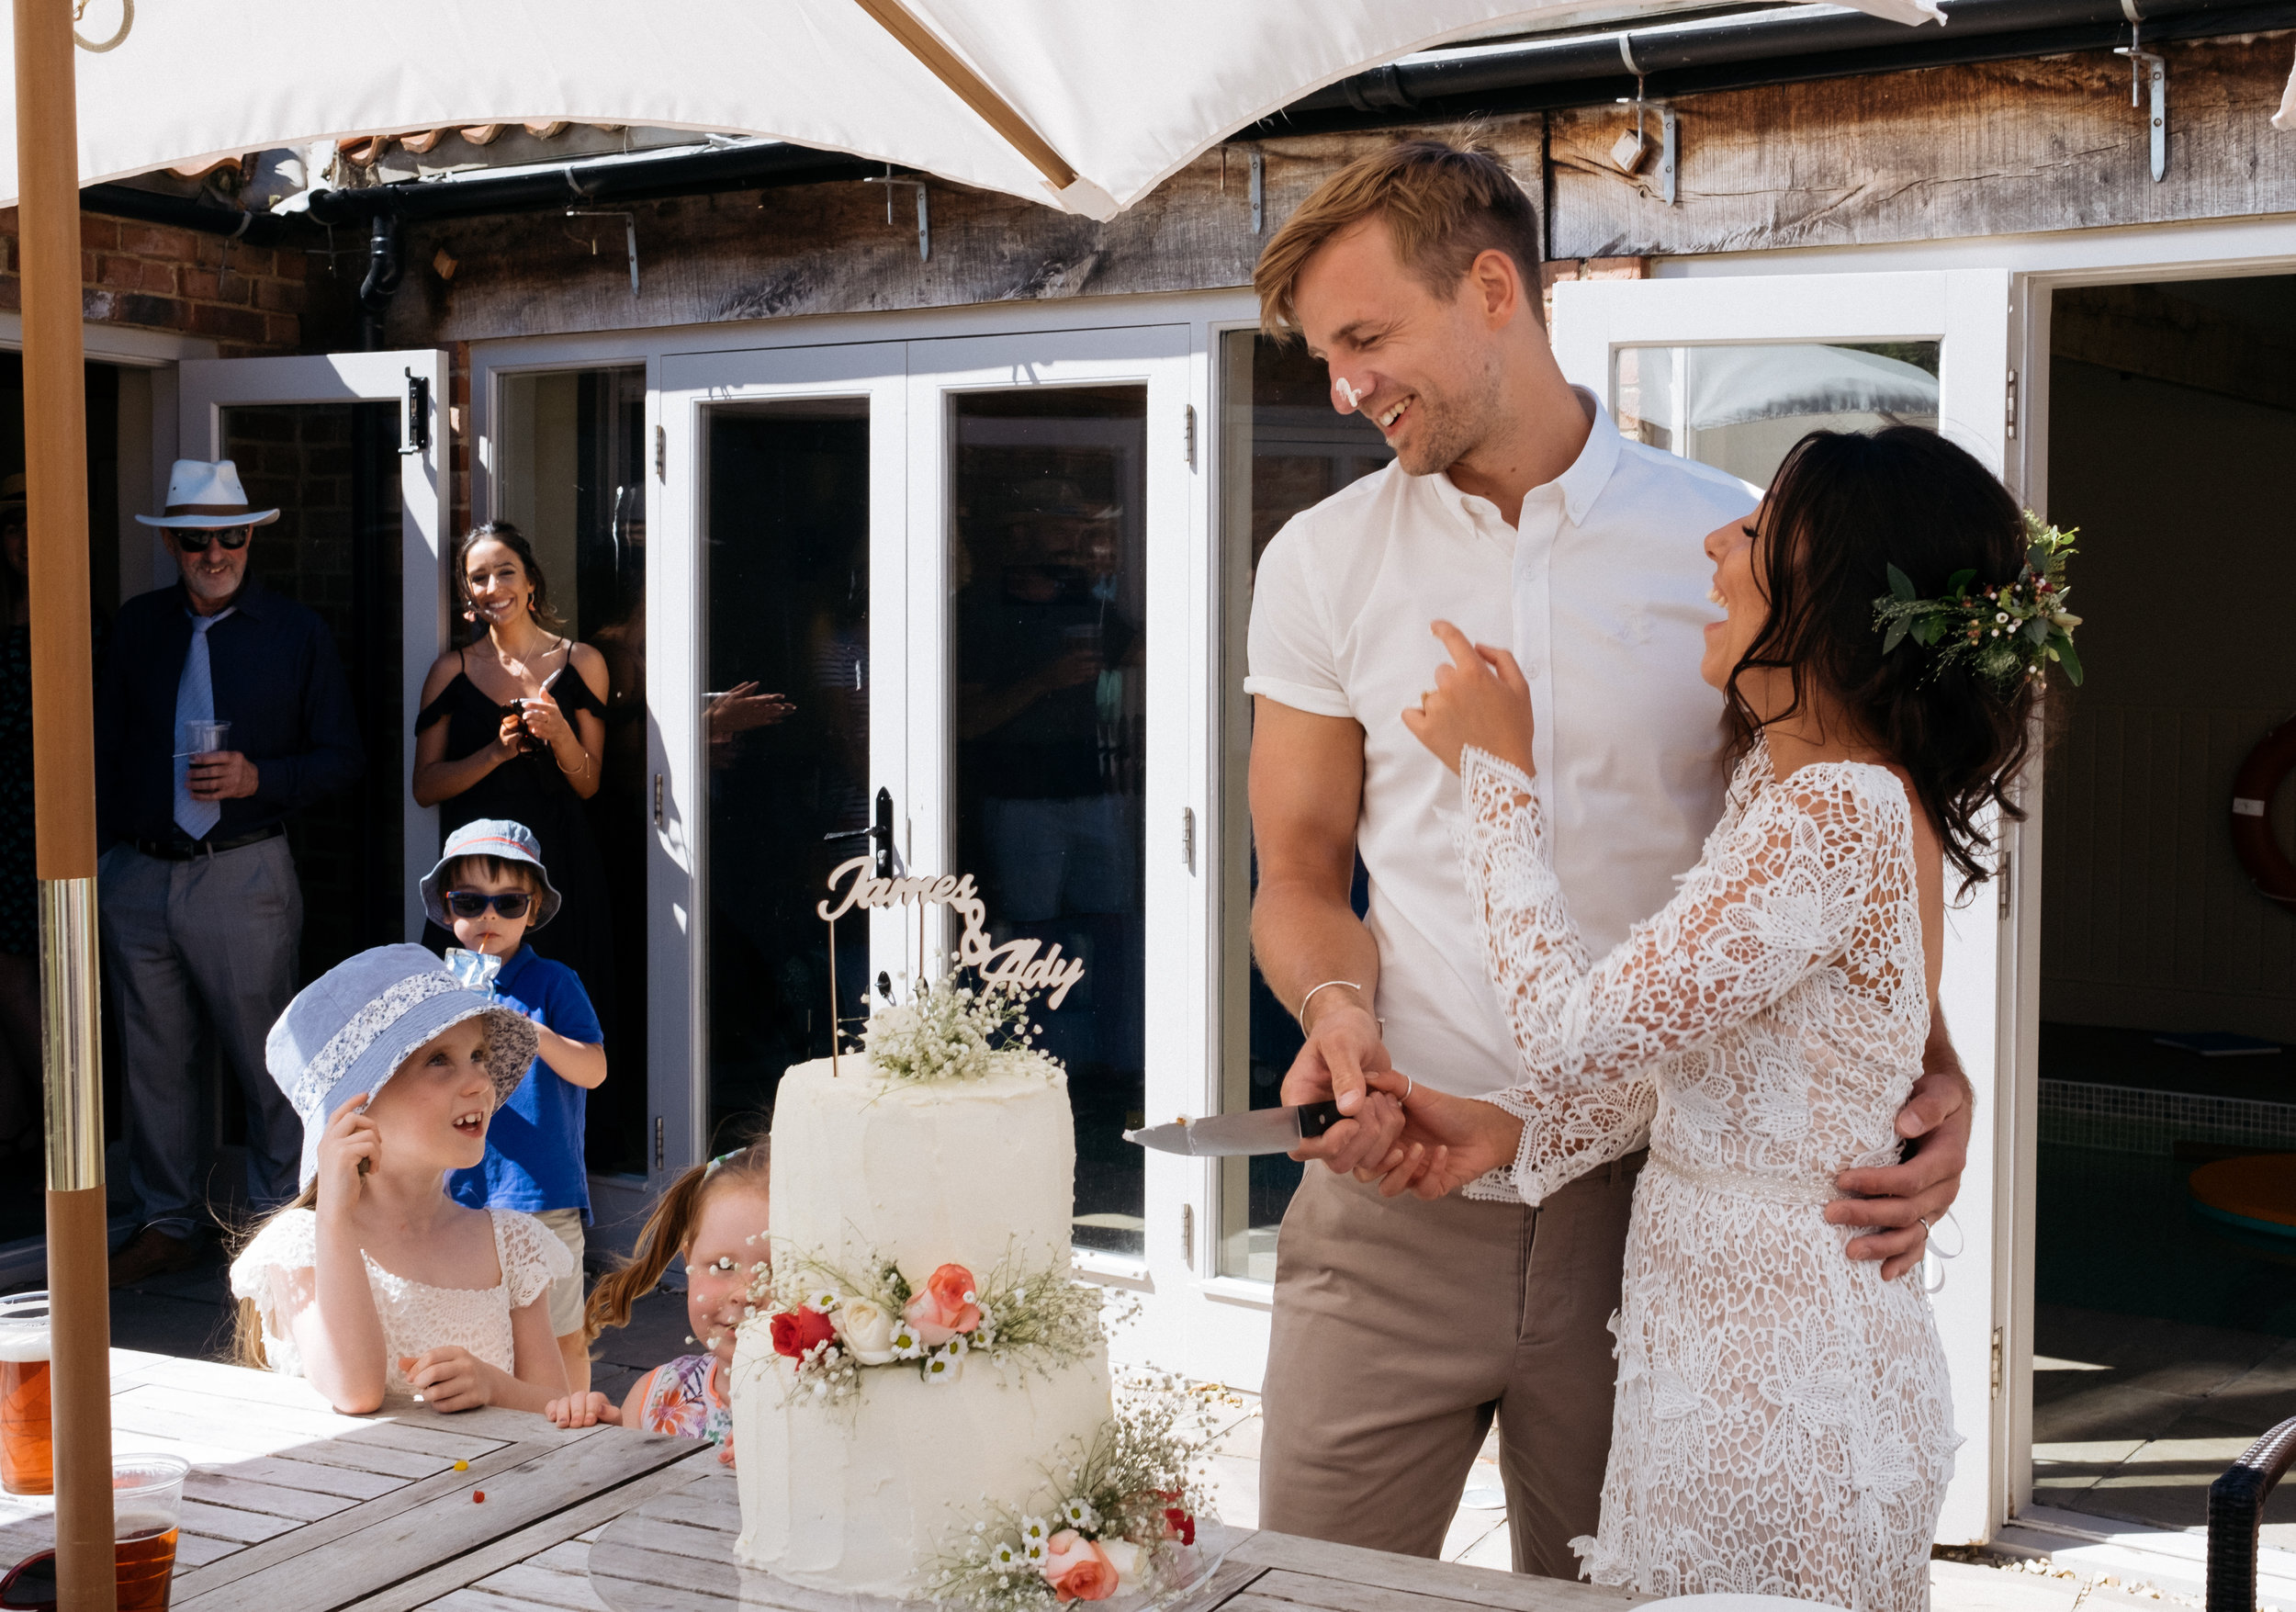 Bride and groom laughing during cake cutting